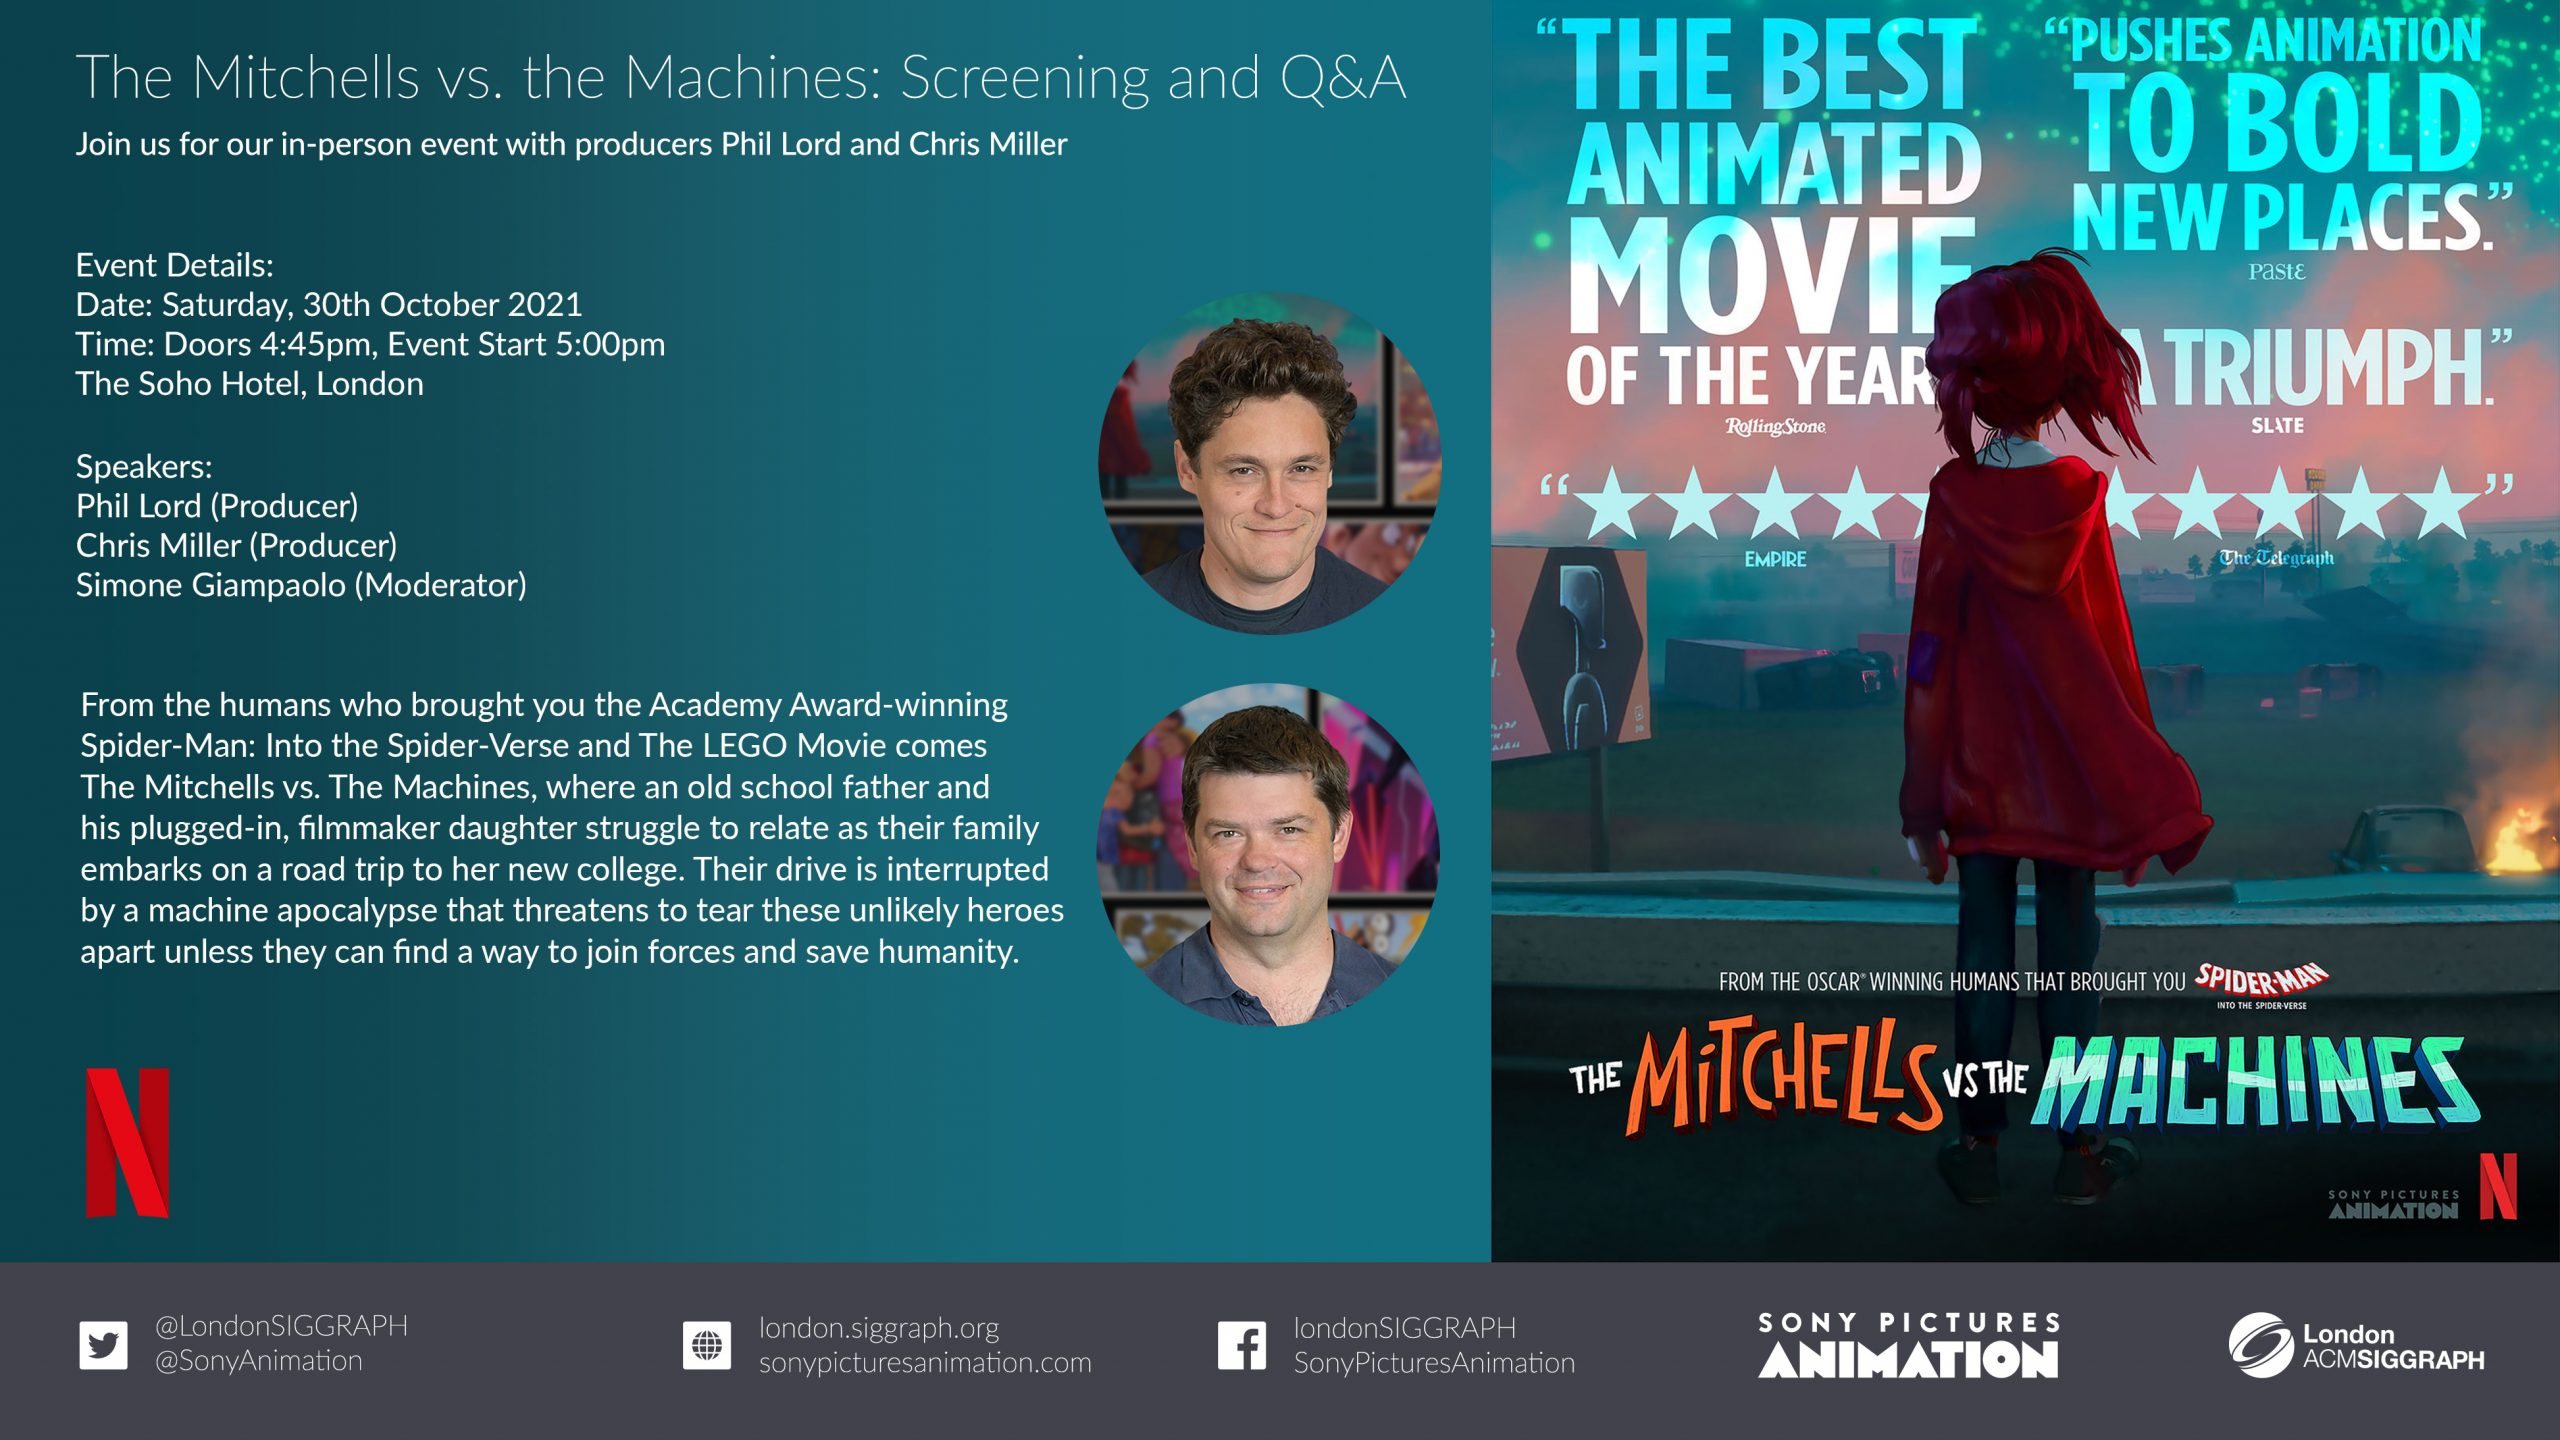 The Mitchells vs. the Machines: Screening and Q&A Poster